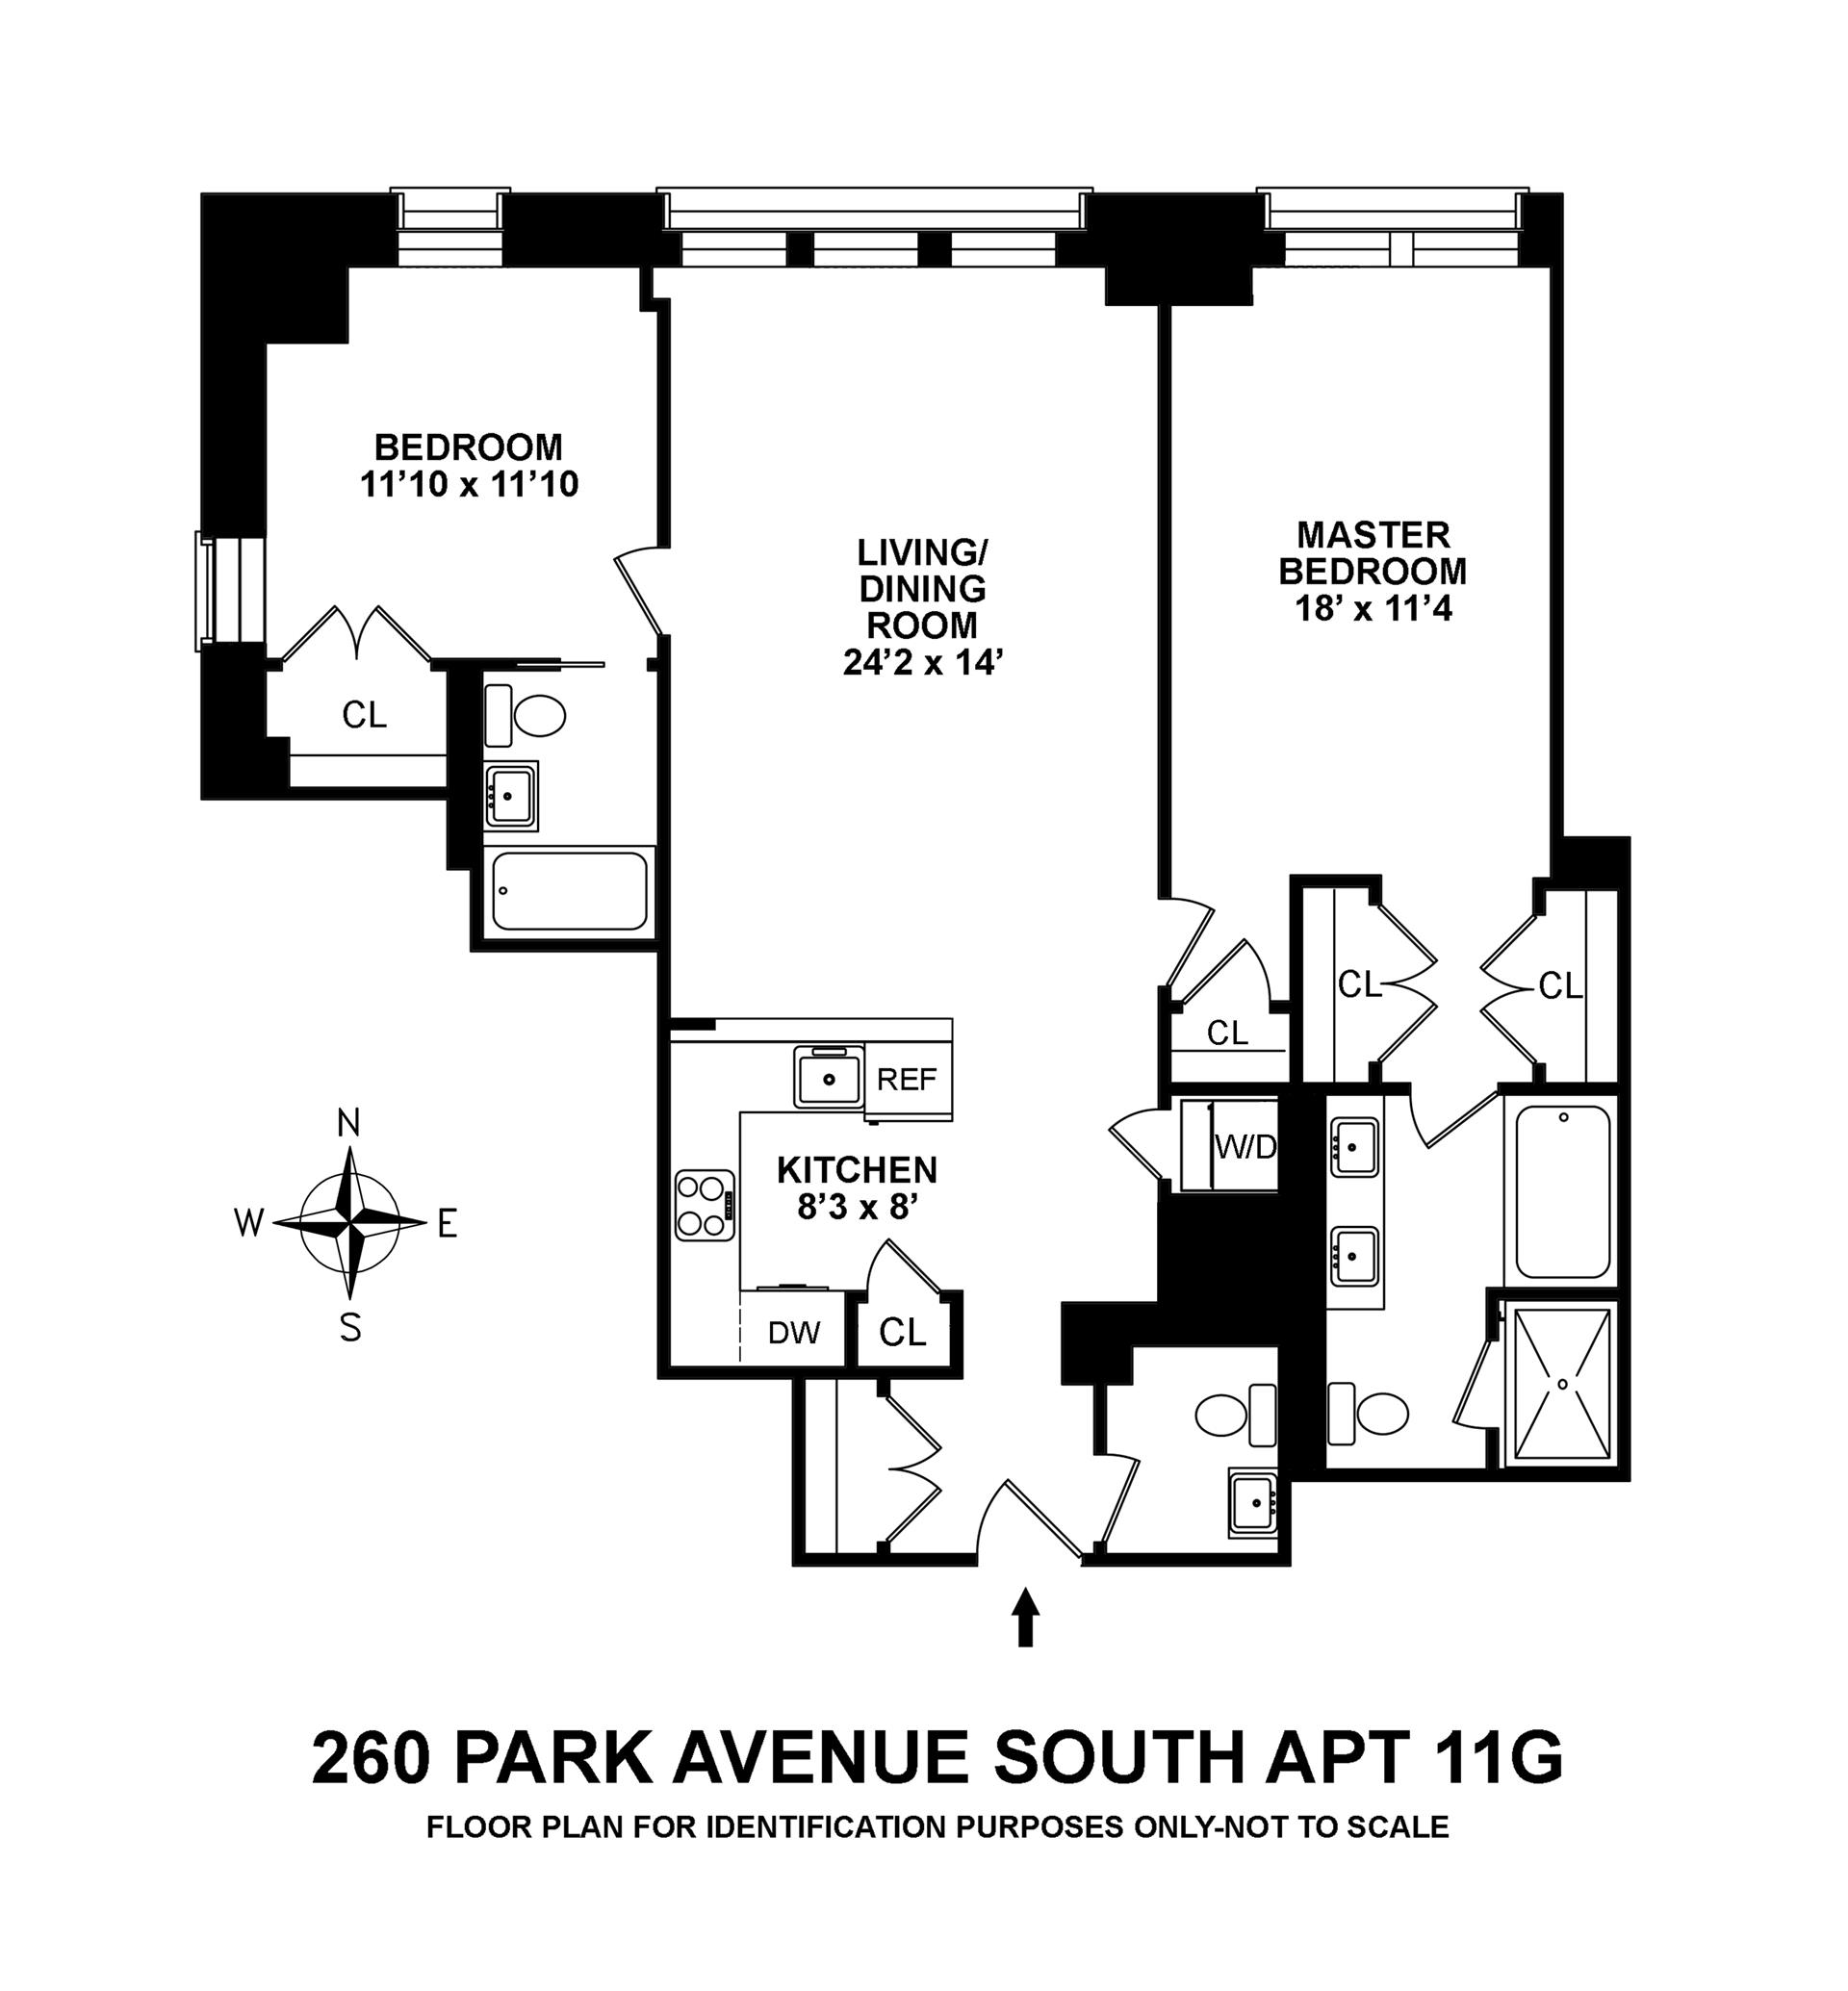 Floor plan of 260 Park Avenue South, 11G - Flatiron District, New York